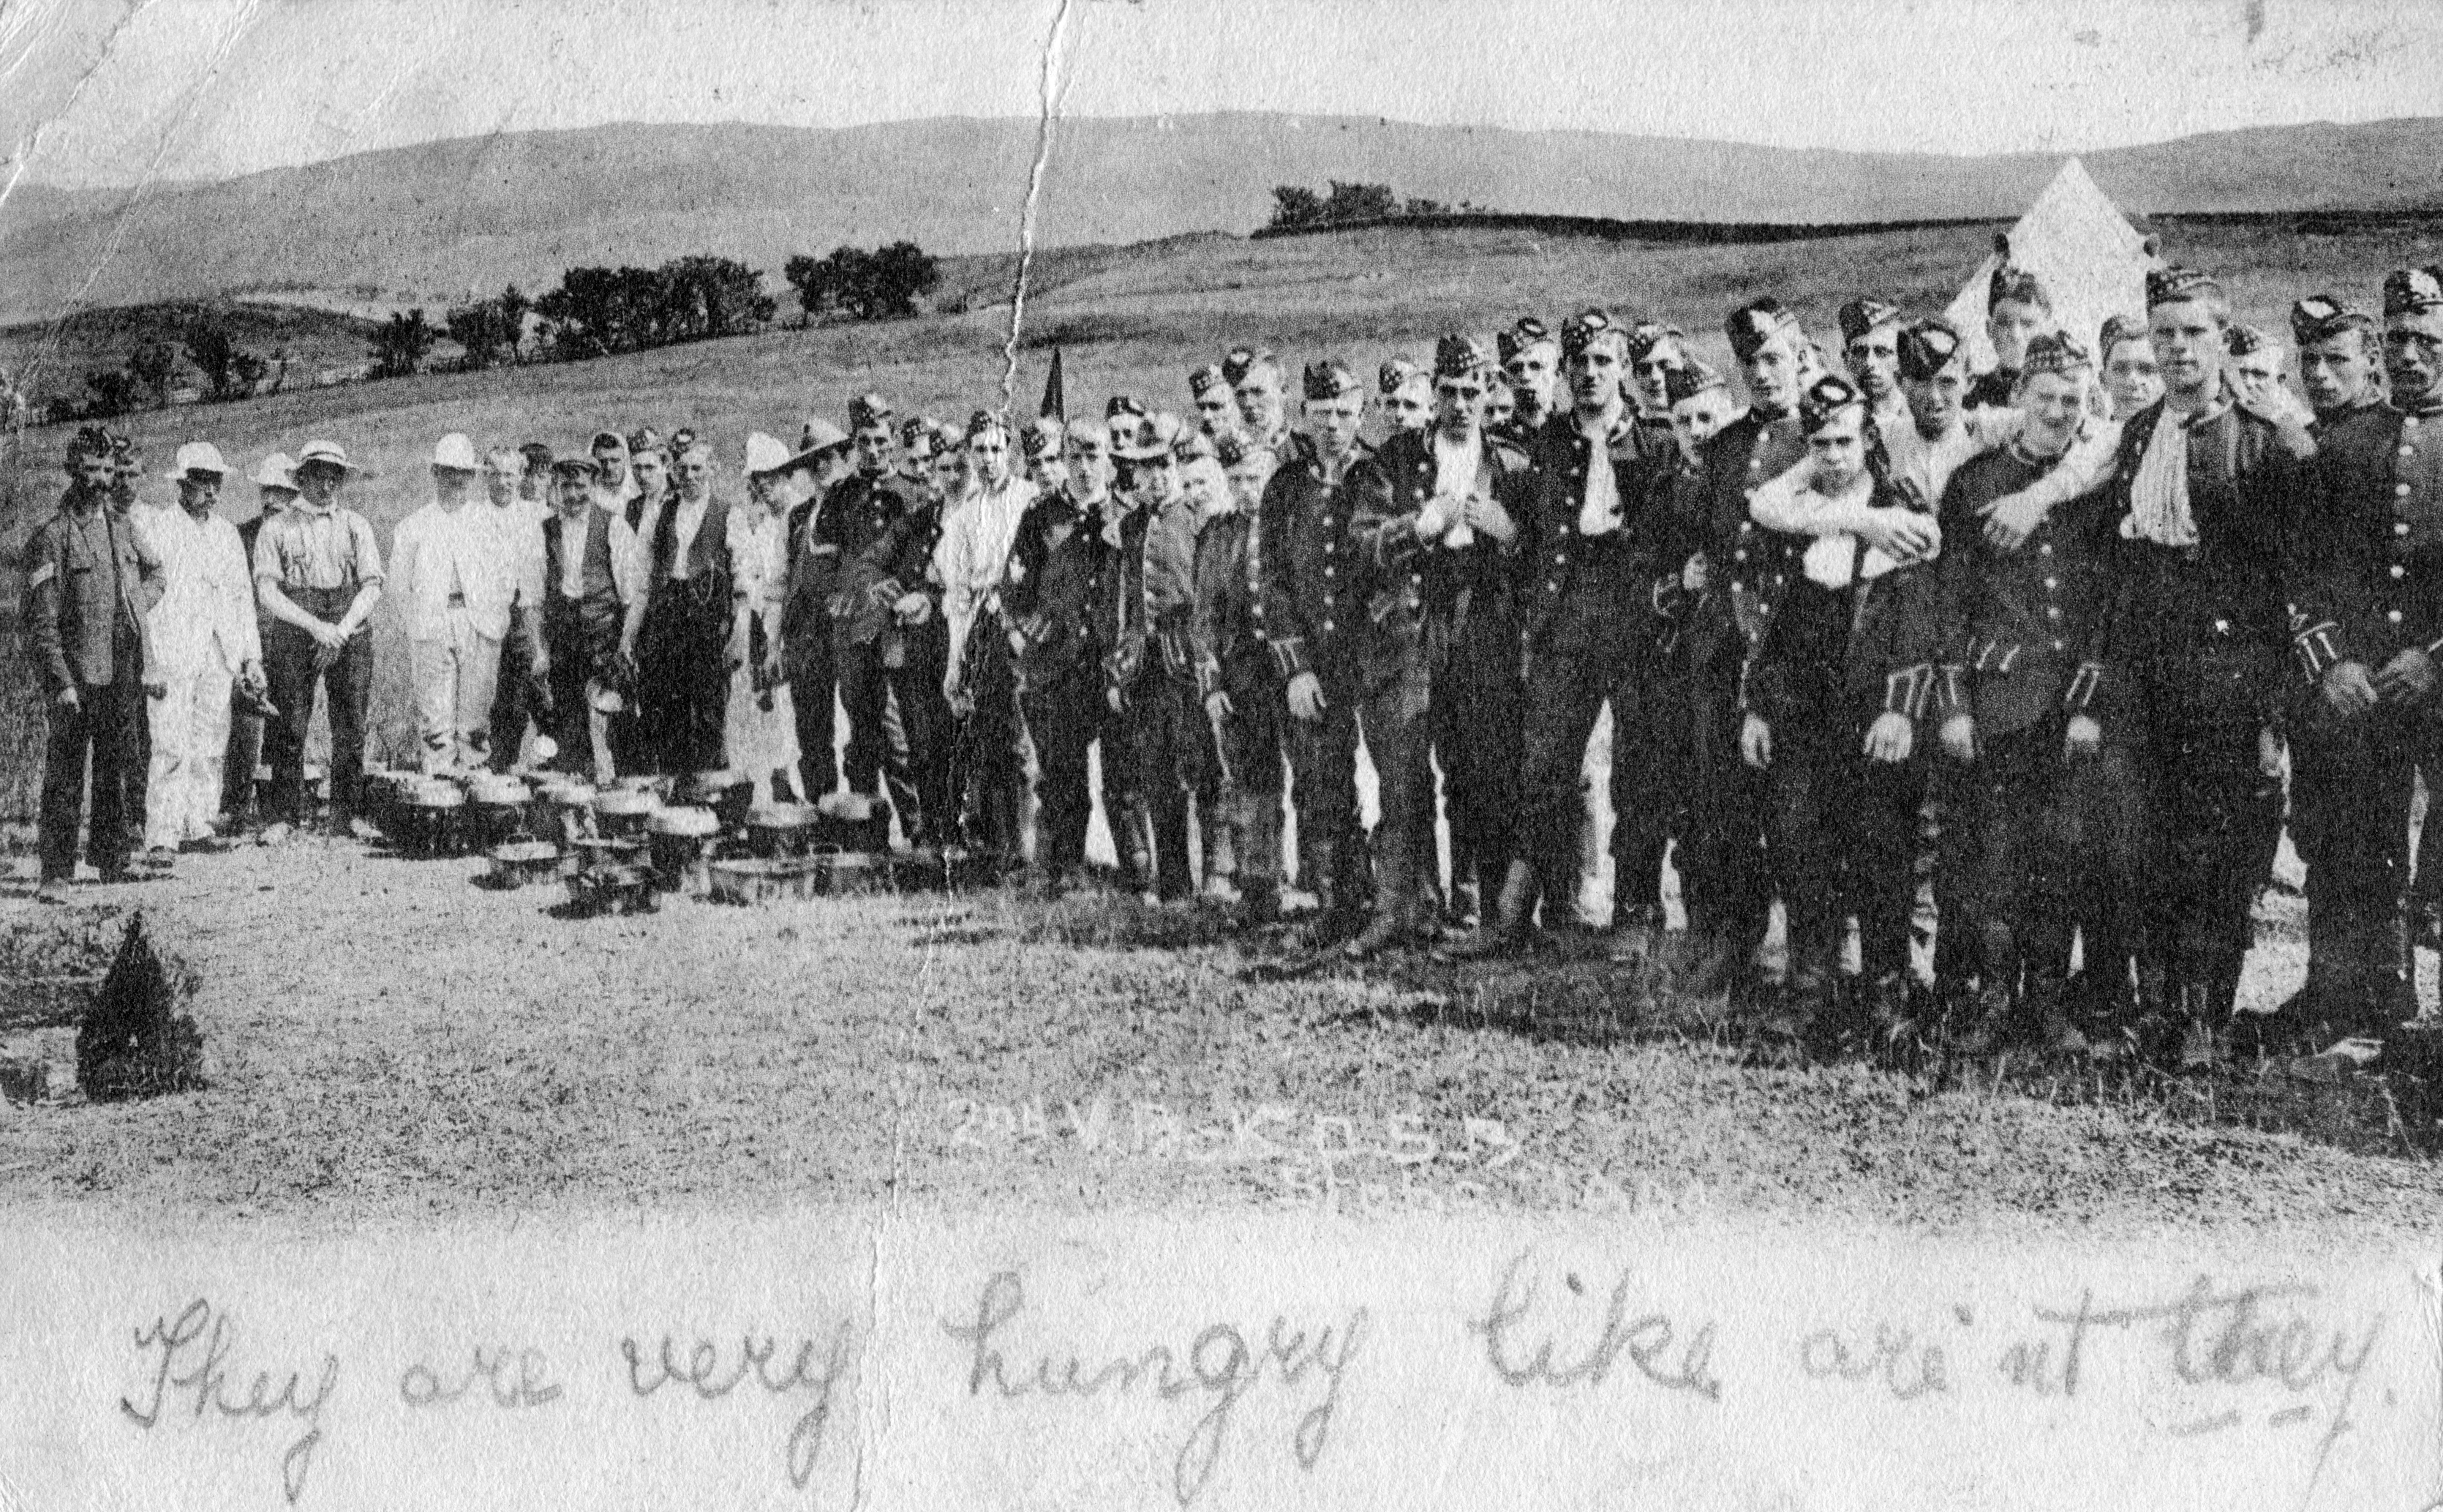 KOSB; King's Own Scottish Borderers; First World War; eating; WW1